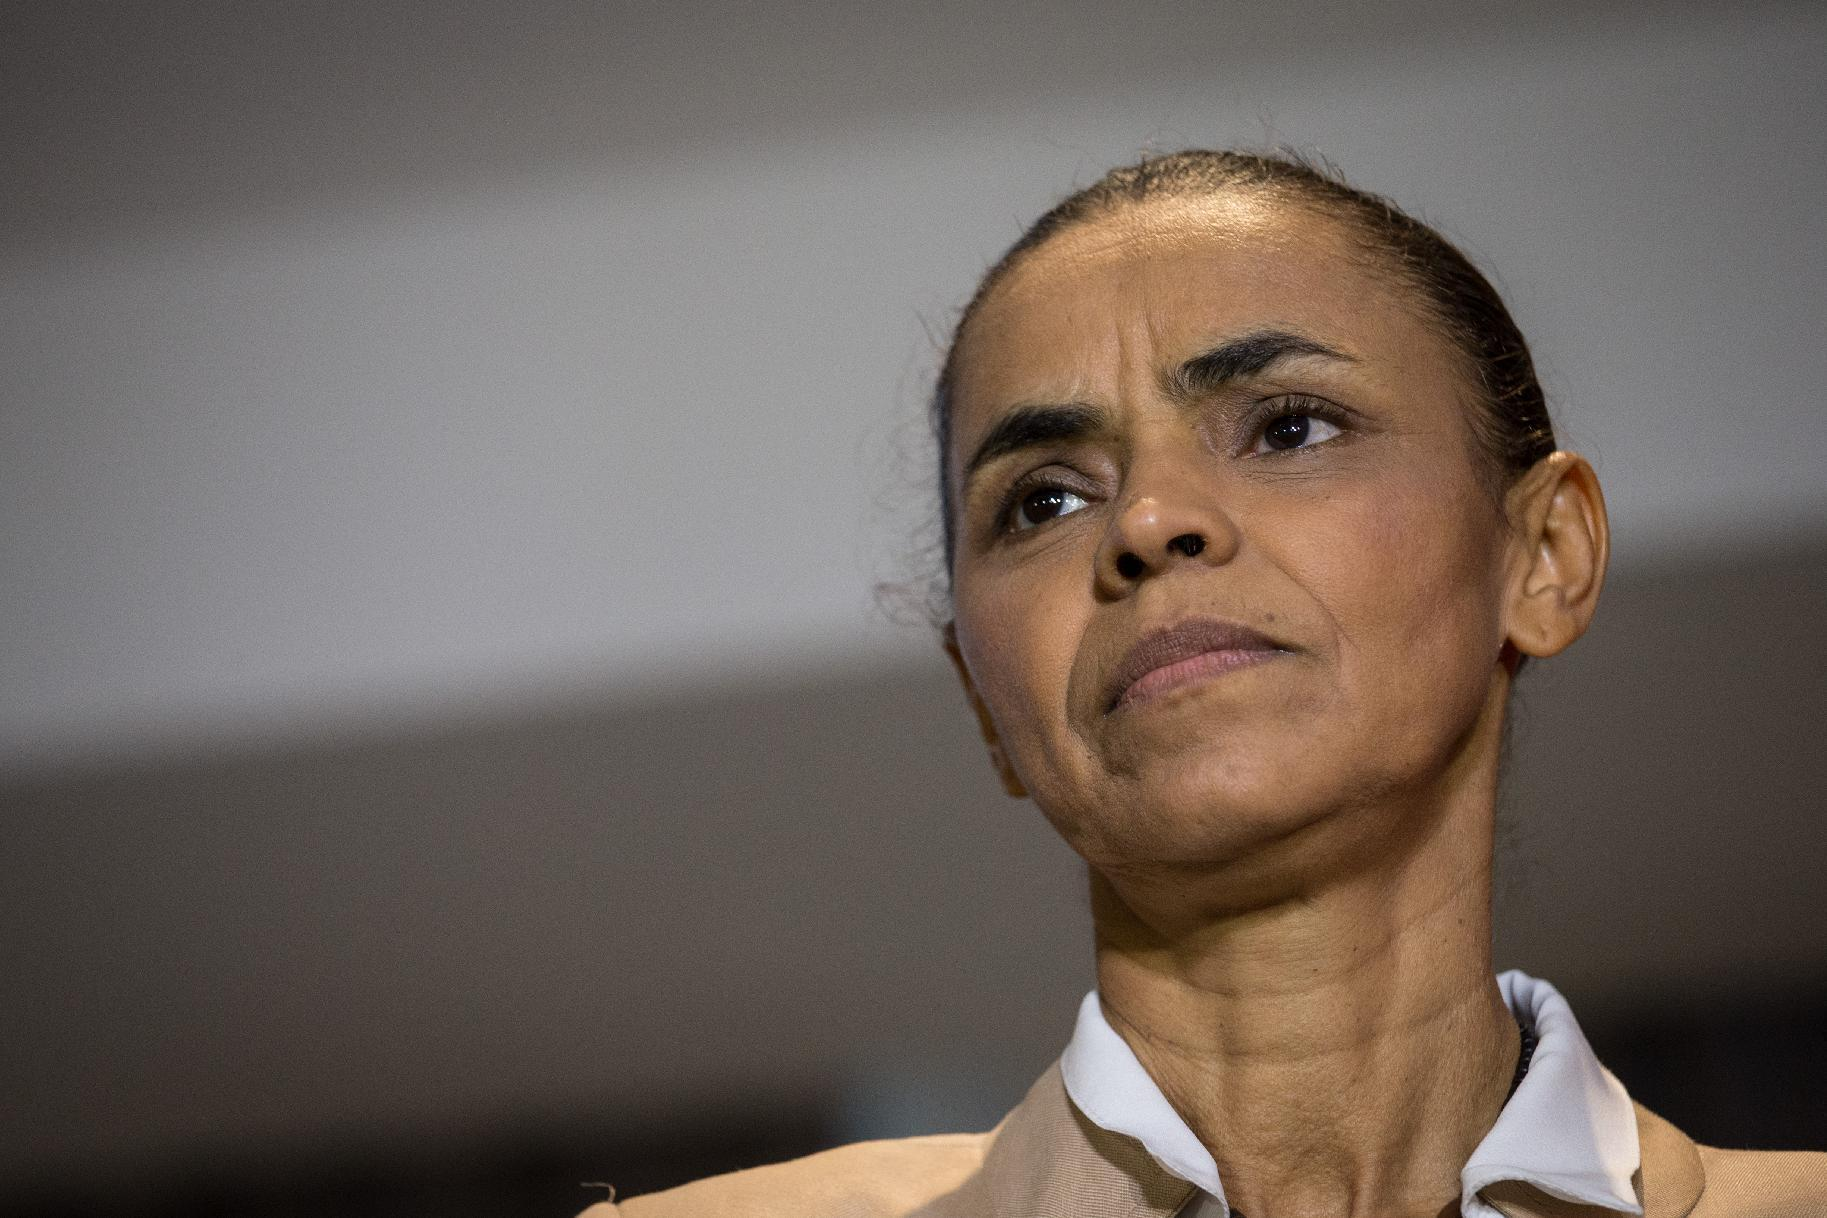 Brazil's presidential candidate for the Brazilian Socialist Party, Marina Silva, speaks during a press conference in Rio de Janeiro, Brazil, on September 17, 2014 (AFP Photo/Yasuyoshi Chiba)